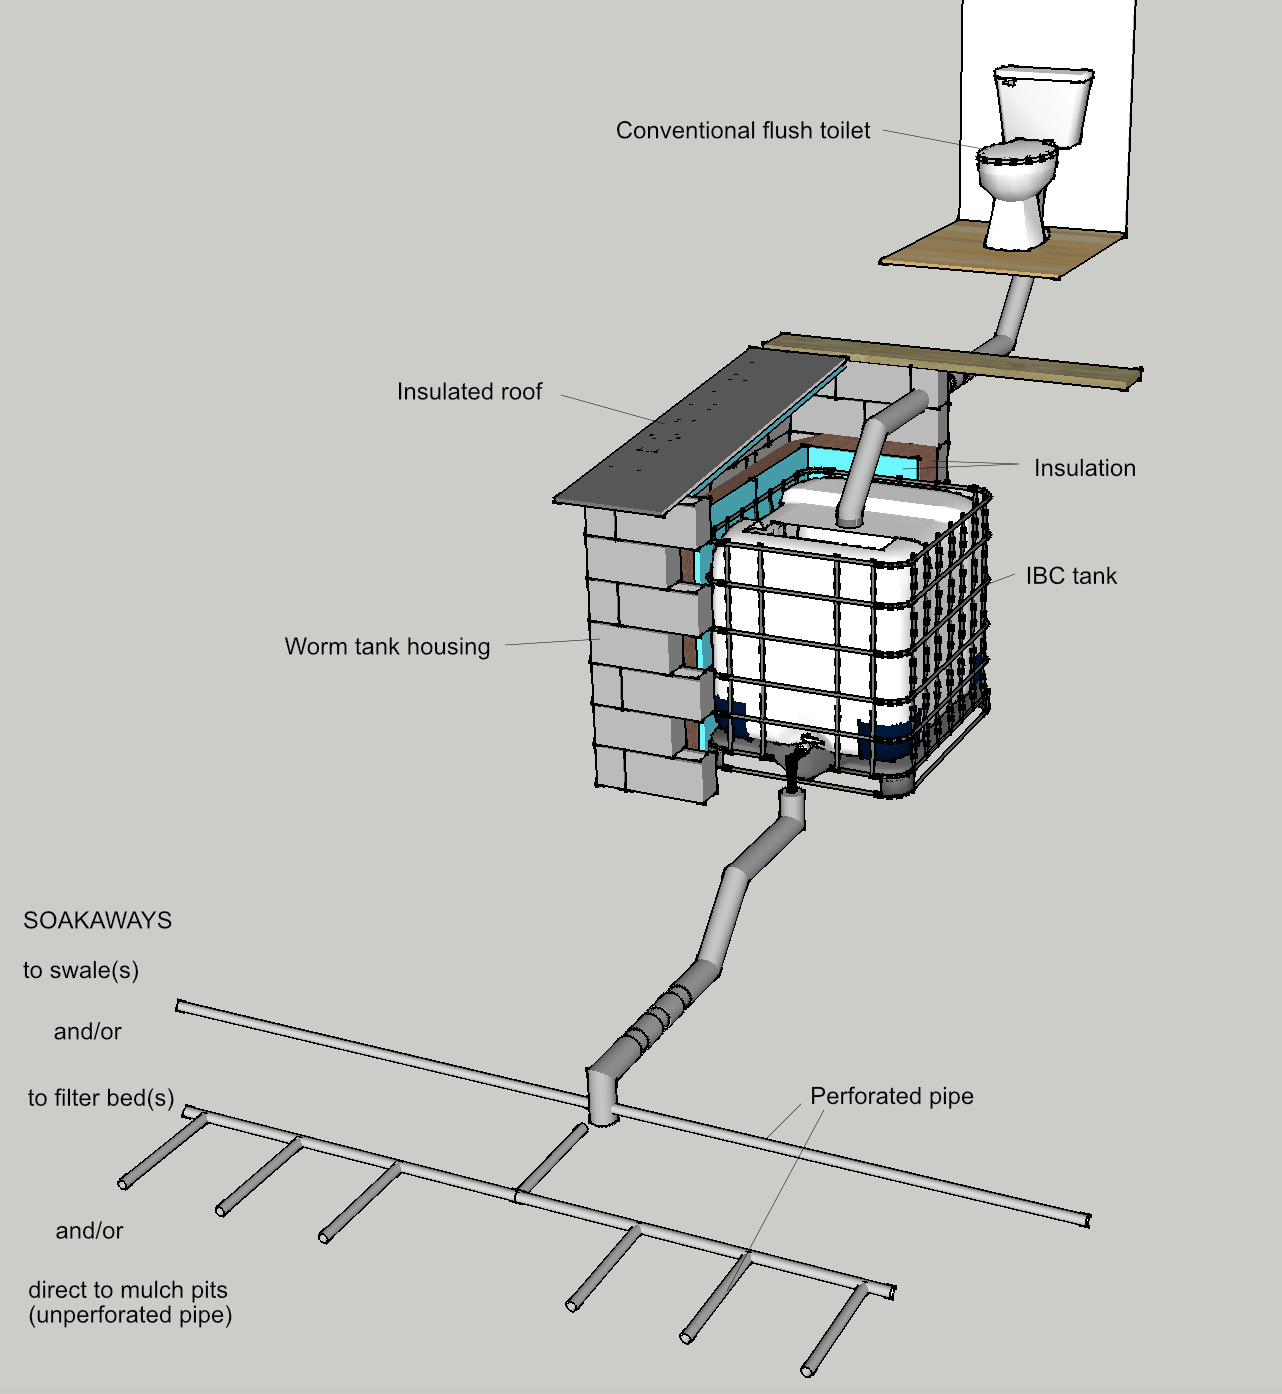 hight resolution of vermicomposting toilet system schematic